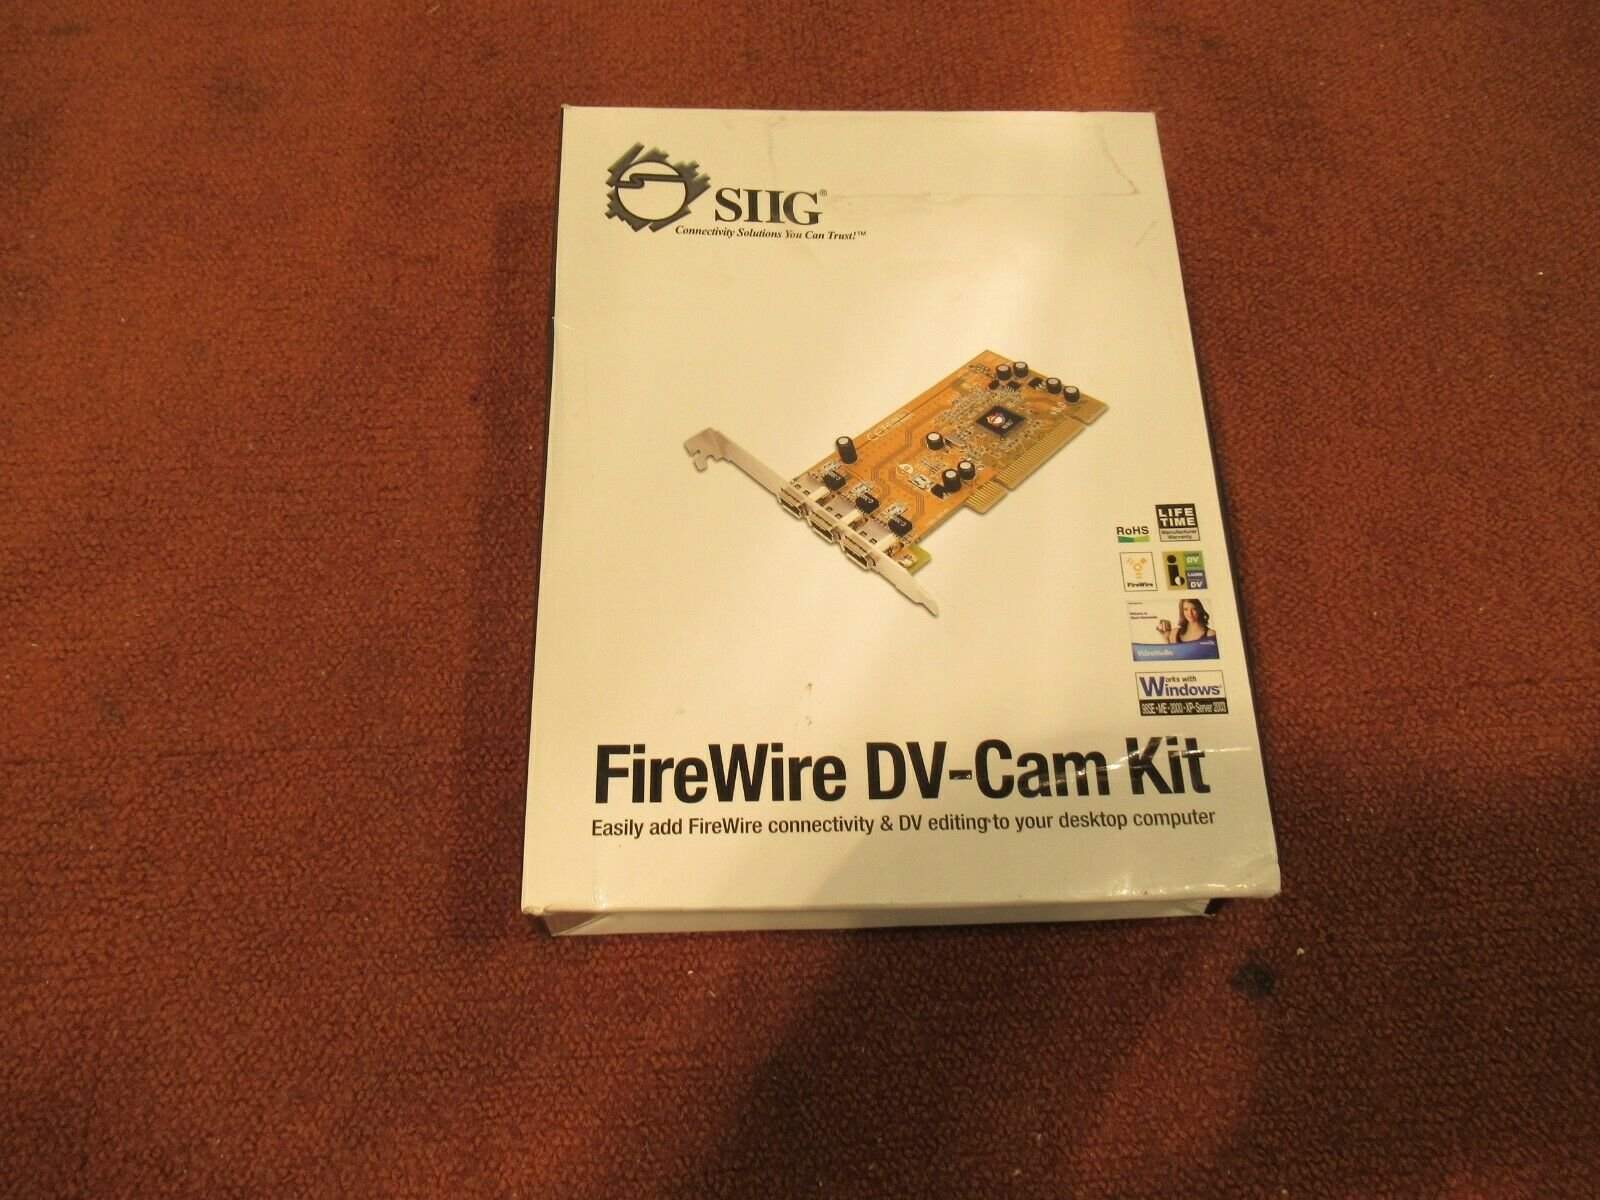 SIIG Firewire DV-Cam Kit E189350 with DVD & Instruction Guide